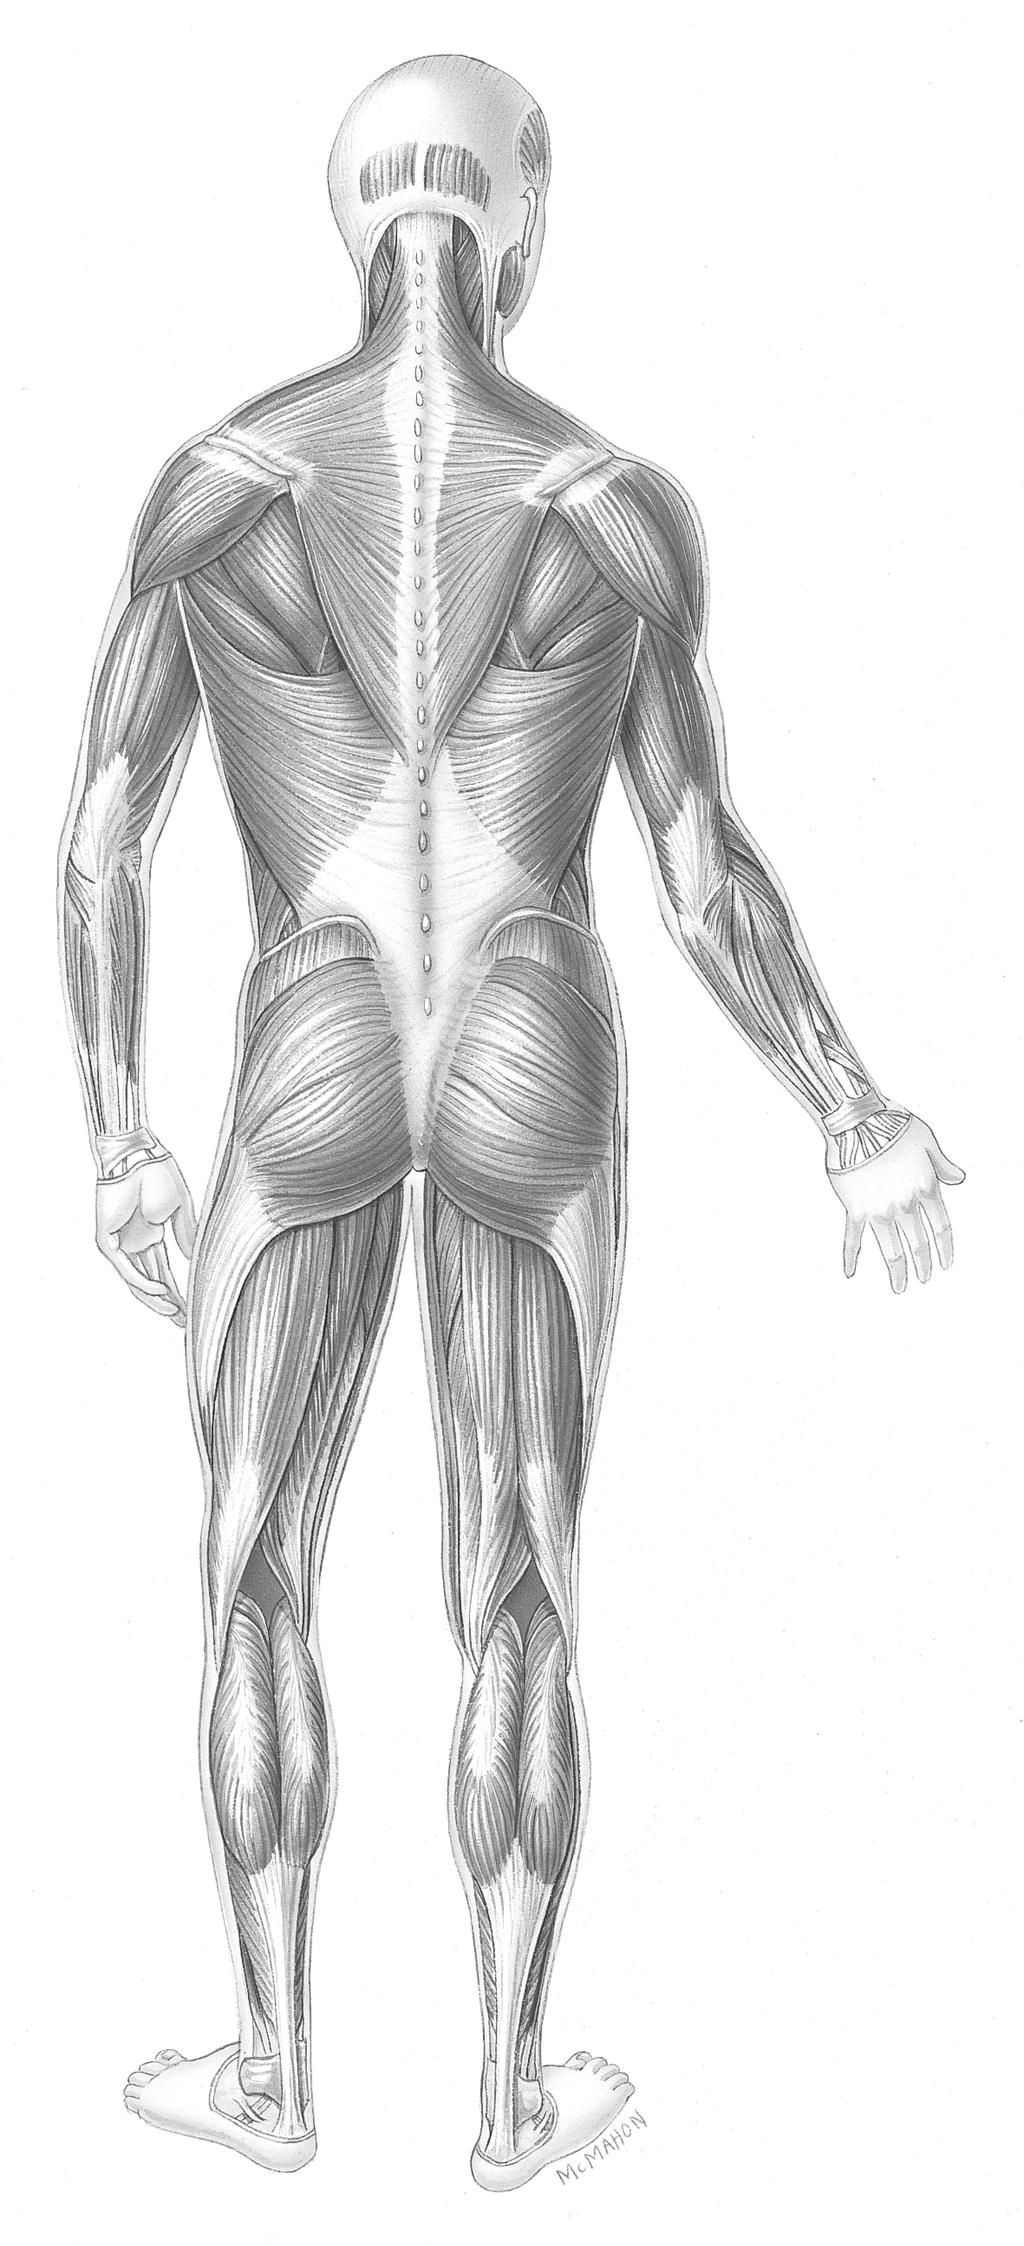 The Muscular System OBJECTIVES ACTIVITIES. A. Completion - PDF